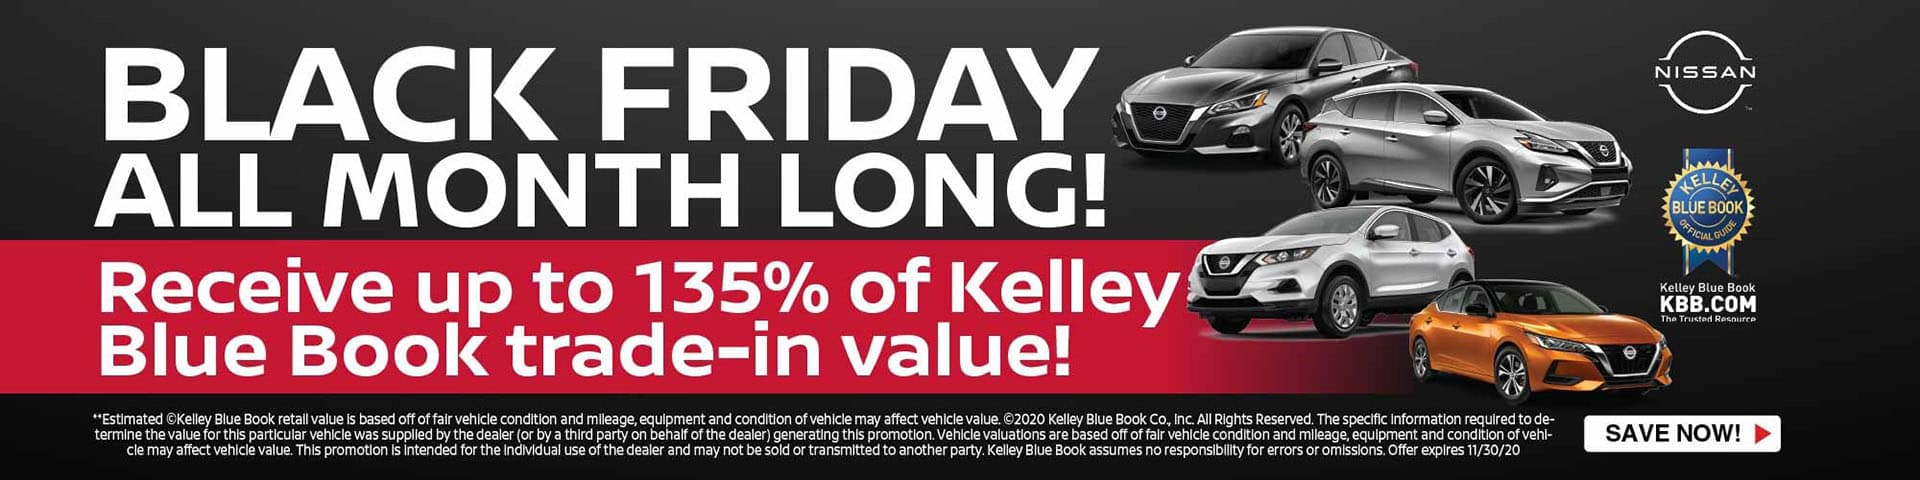 Black Friday all Month - Up to 135% of Kelly Blue Book on trade-ins